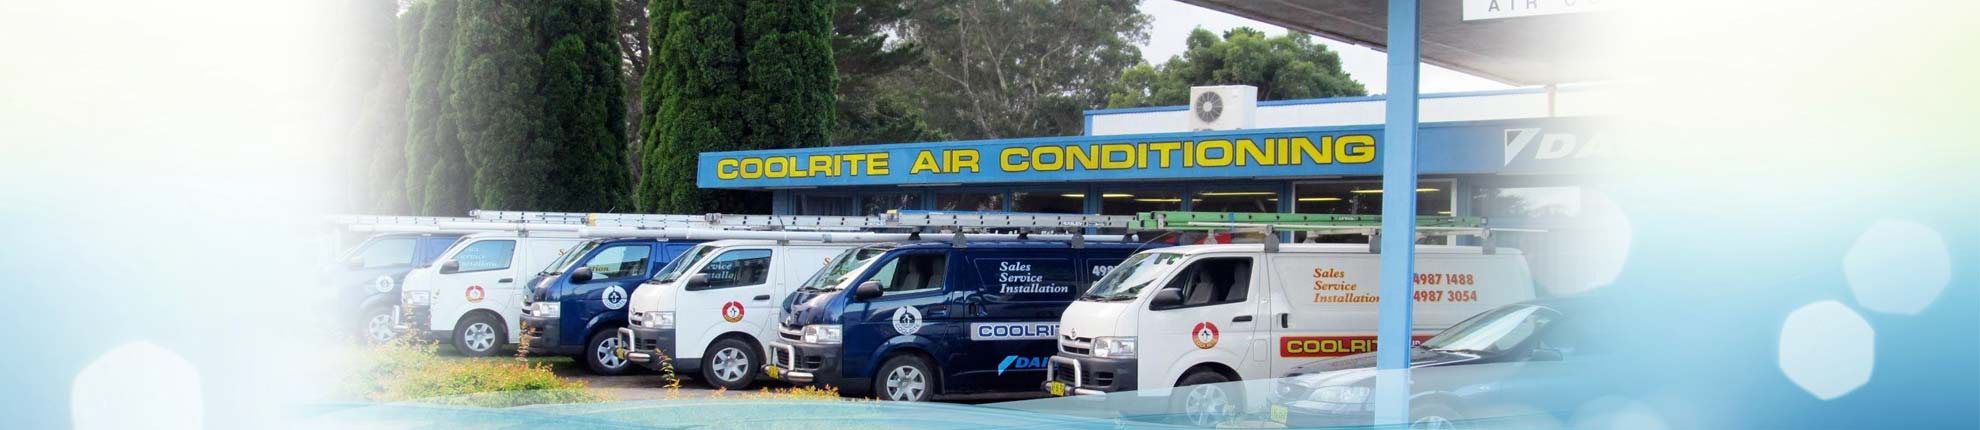 Coolrite air conditioning vans